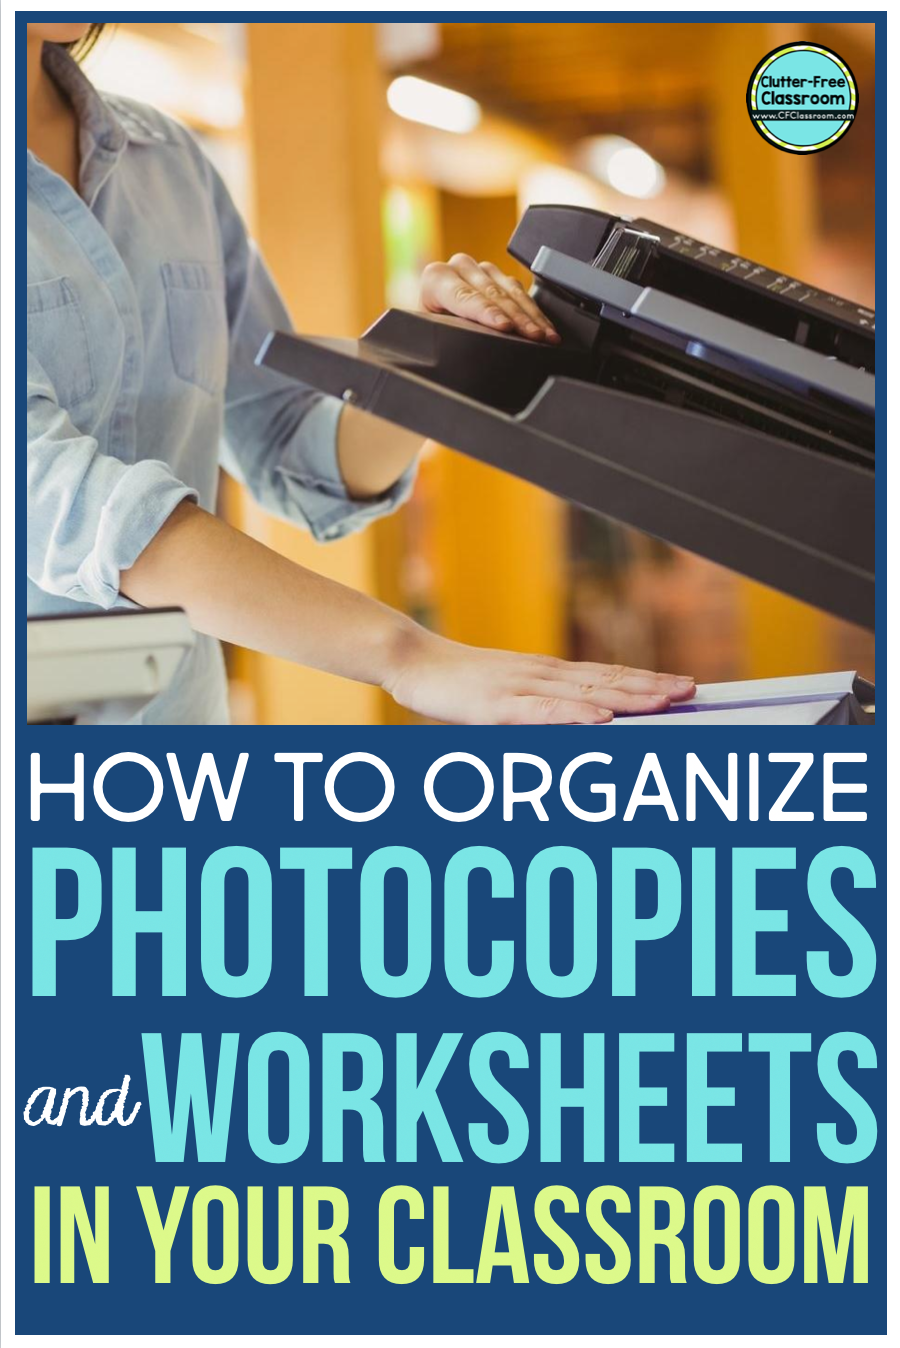 Learn how to organize photocopies and worksheets today! Read this blog post to find out how to organize printables and no prep activities using bins, drawers, folders, binders, boxes, crates, and more.